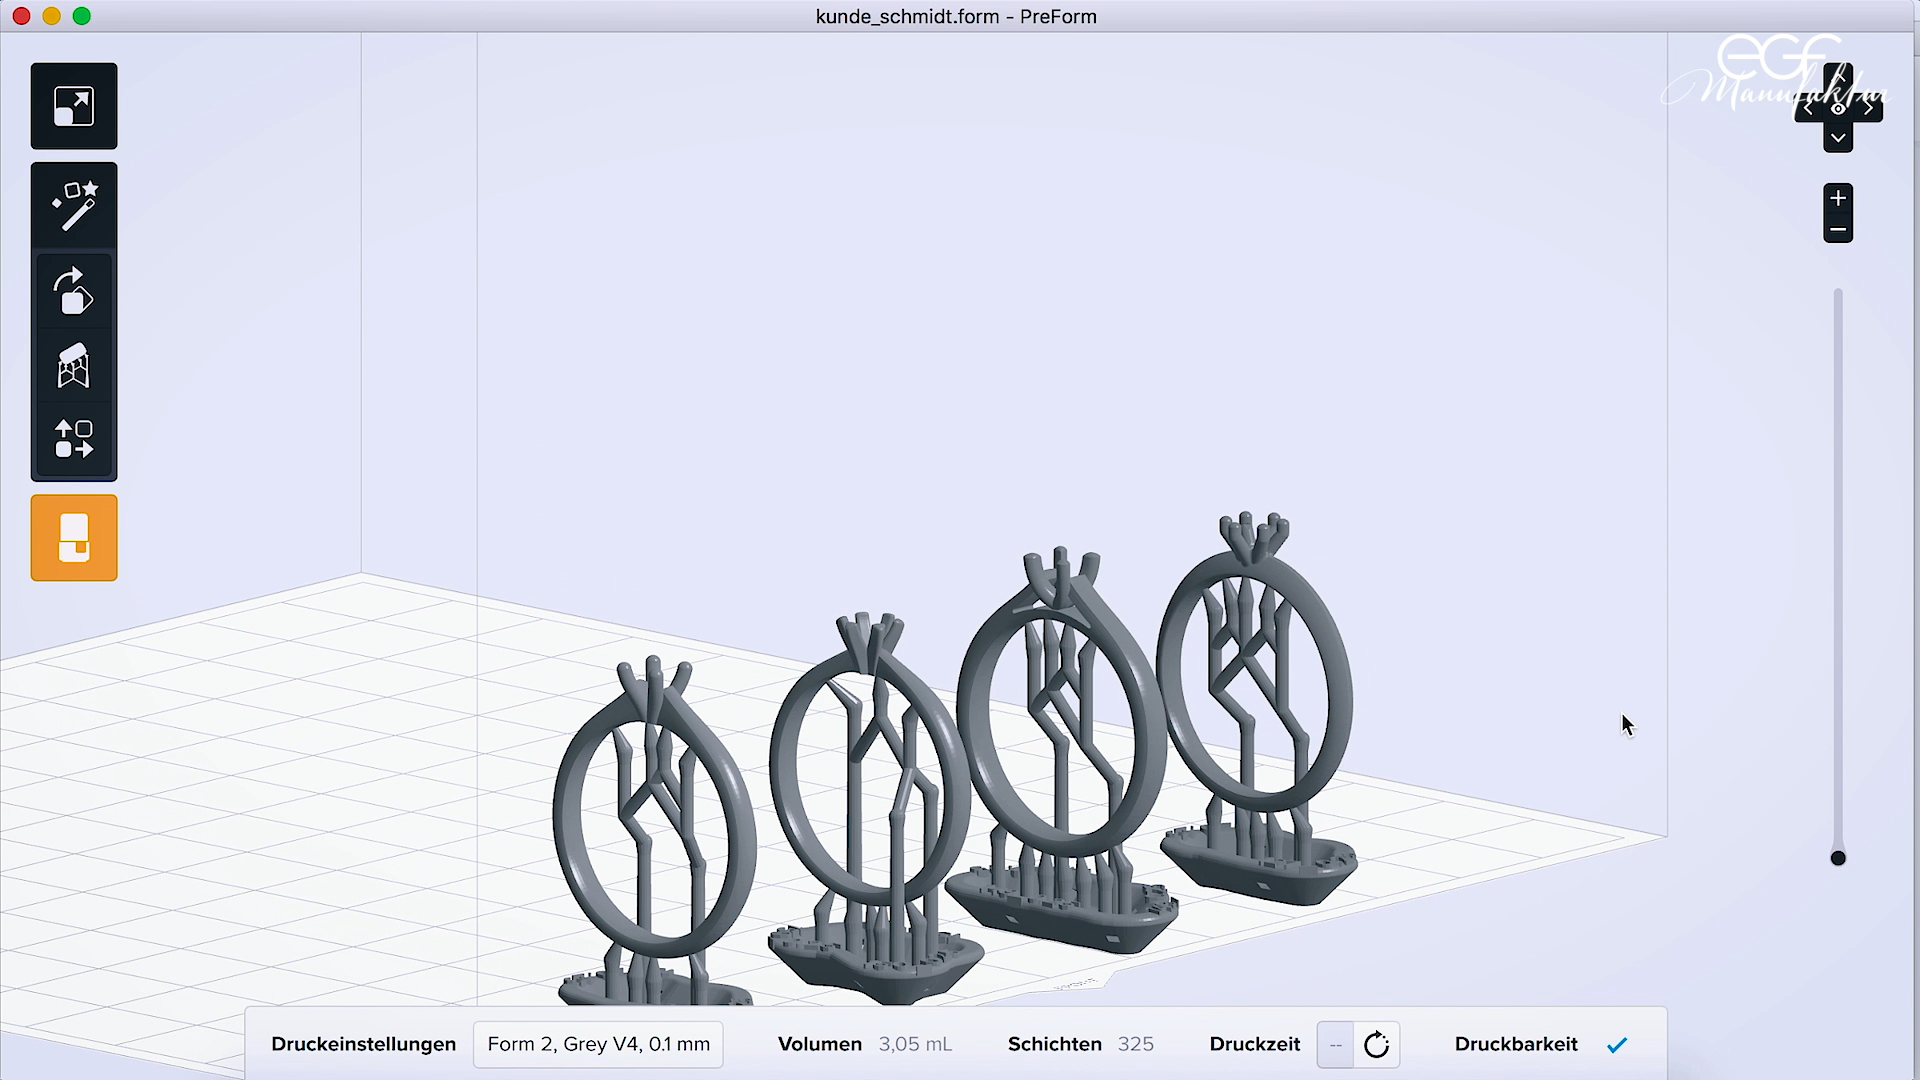 Ring models set up in Formlabs PreForm print preparation software